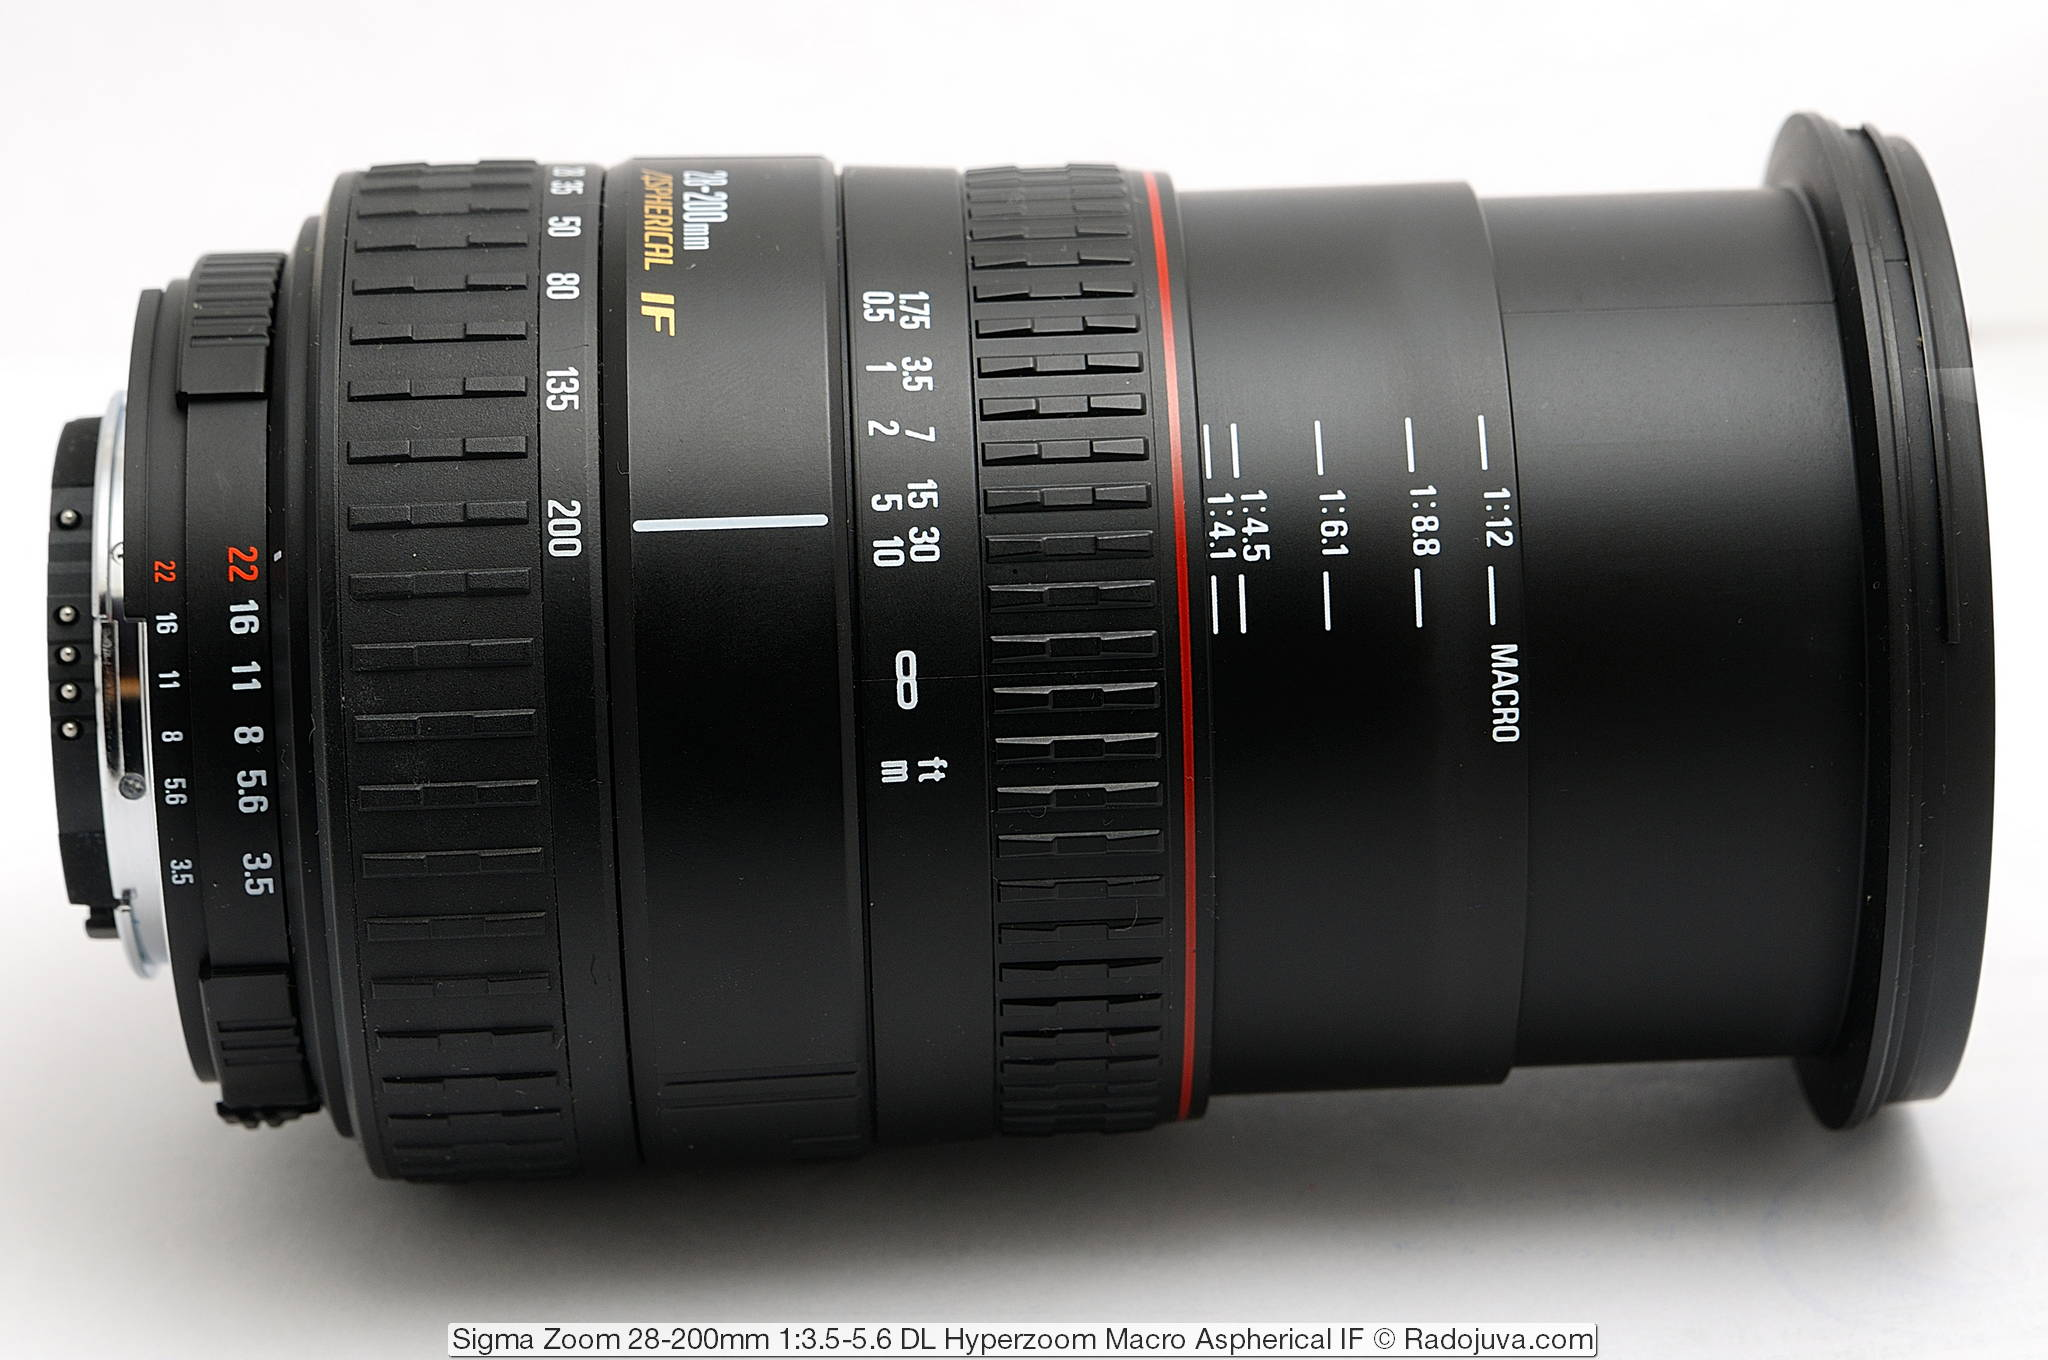 Sigma Zoom 28-200mm 1:3.5-5.6 DL Hyperzoom Macro Aspherical IF